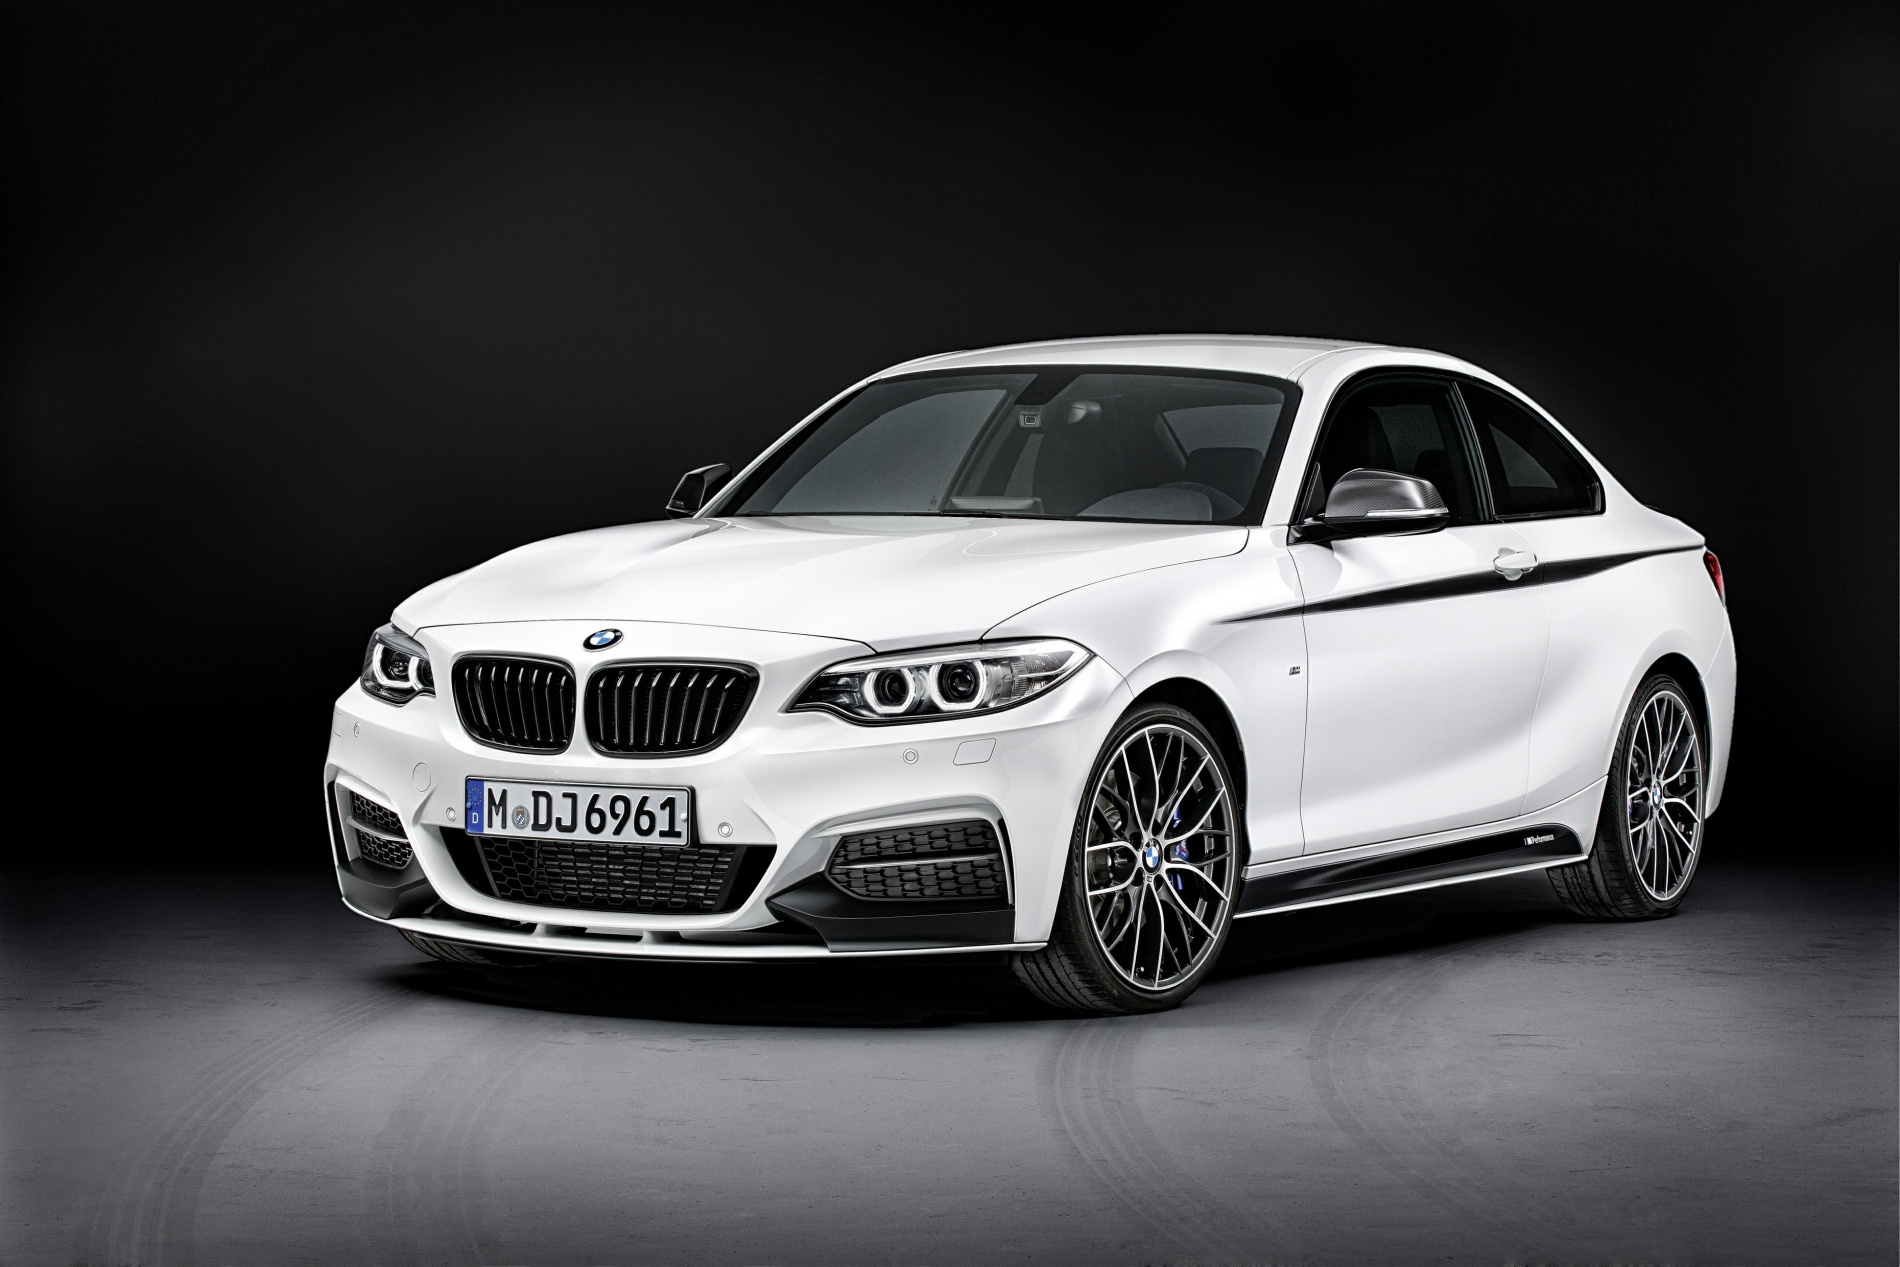 bmw 2 series m performance parts pricing and announcement. Black Bedroom Furniture Sets. Home Design Ideas